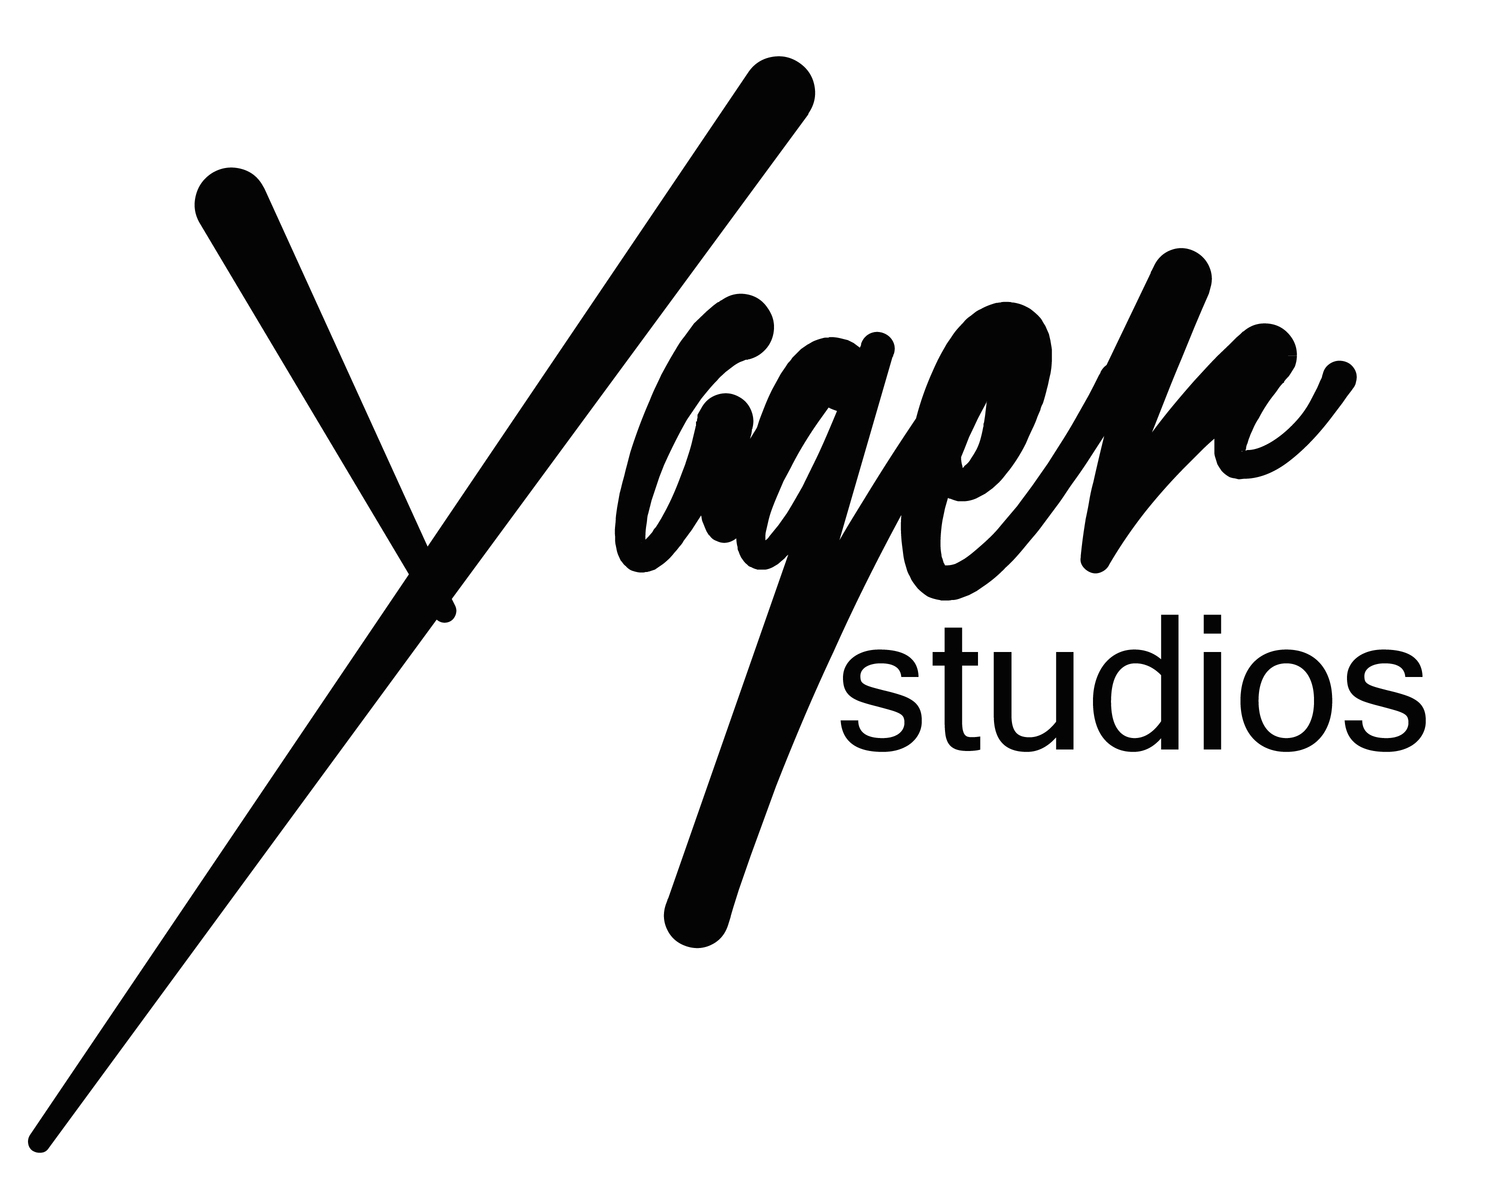 Yager Studios